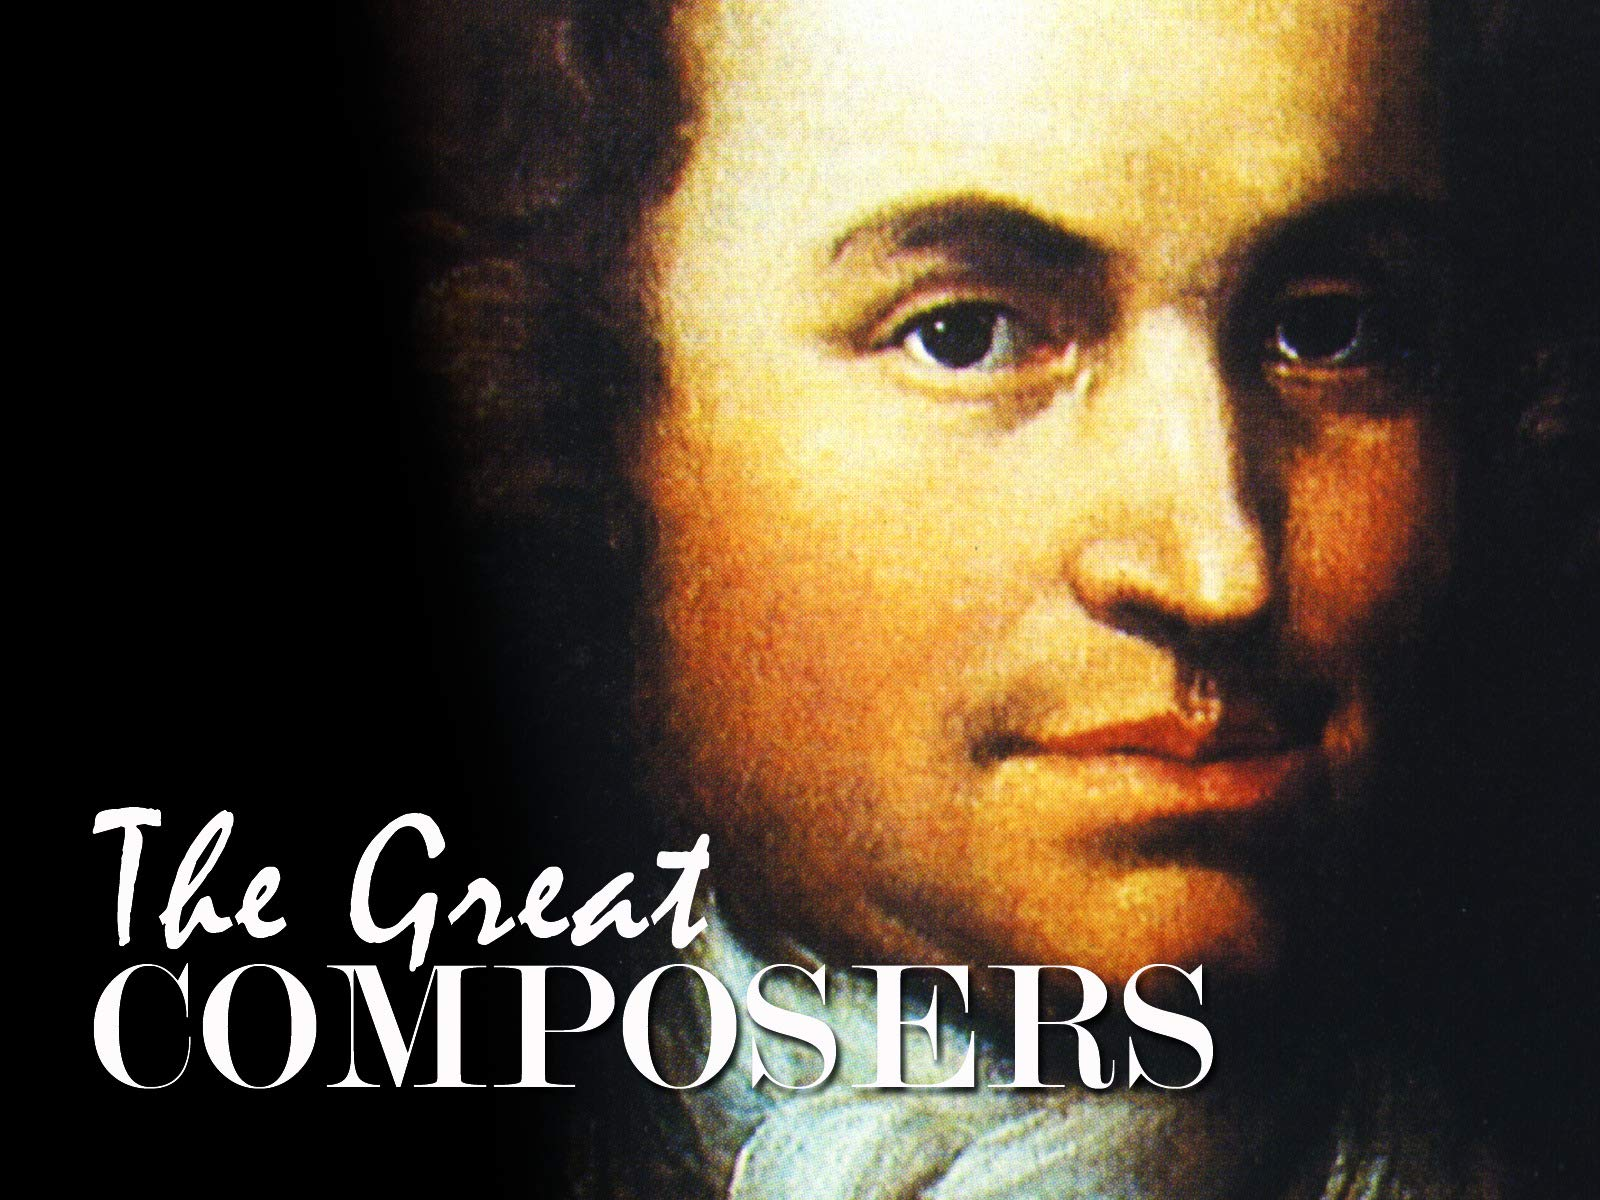 The Great Composers - Season 1